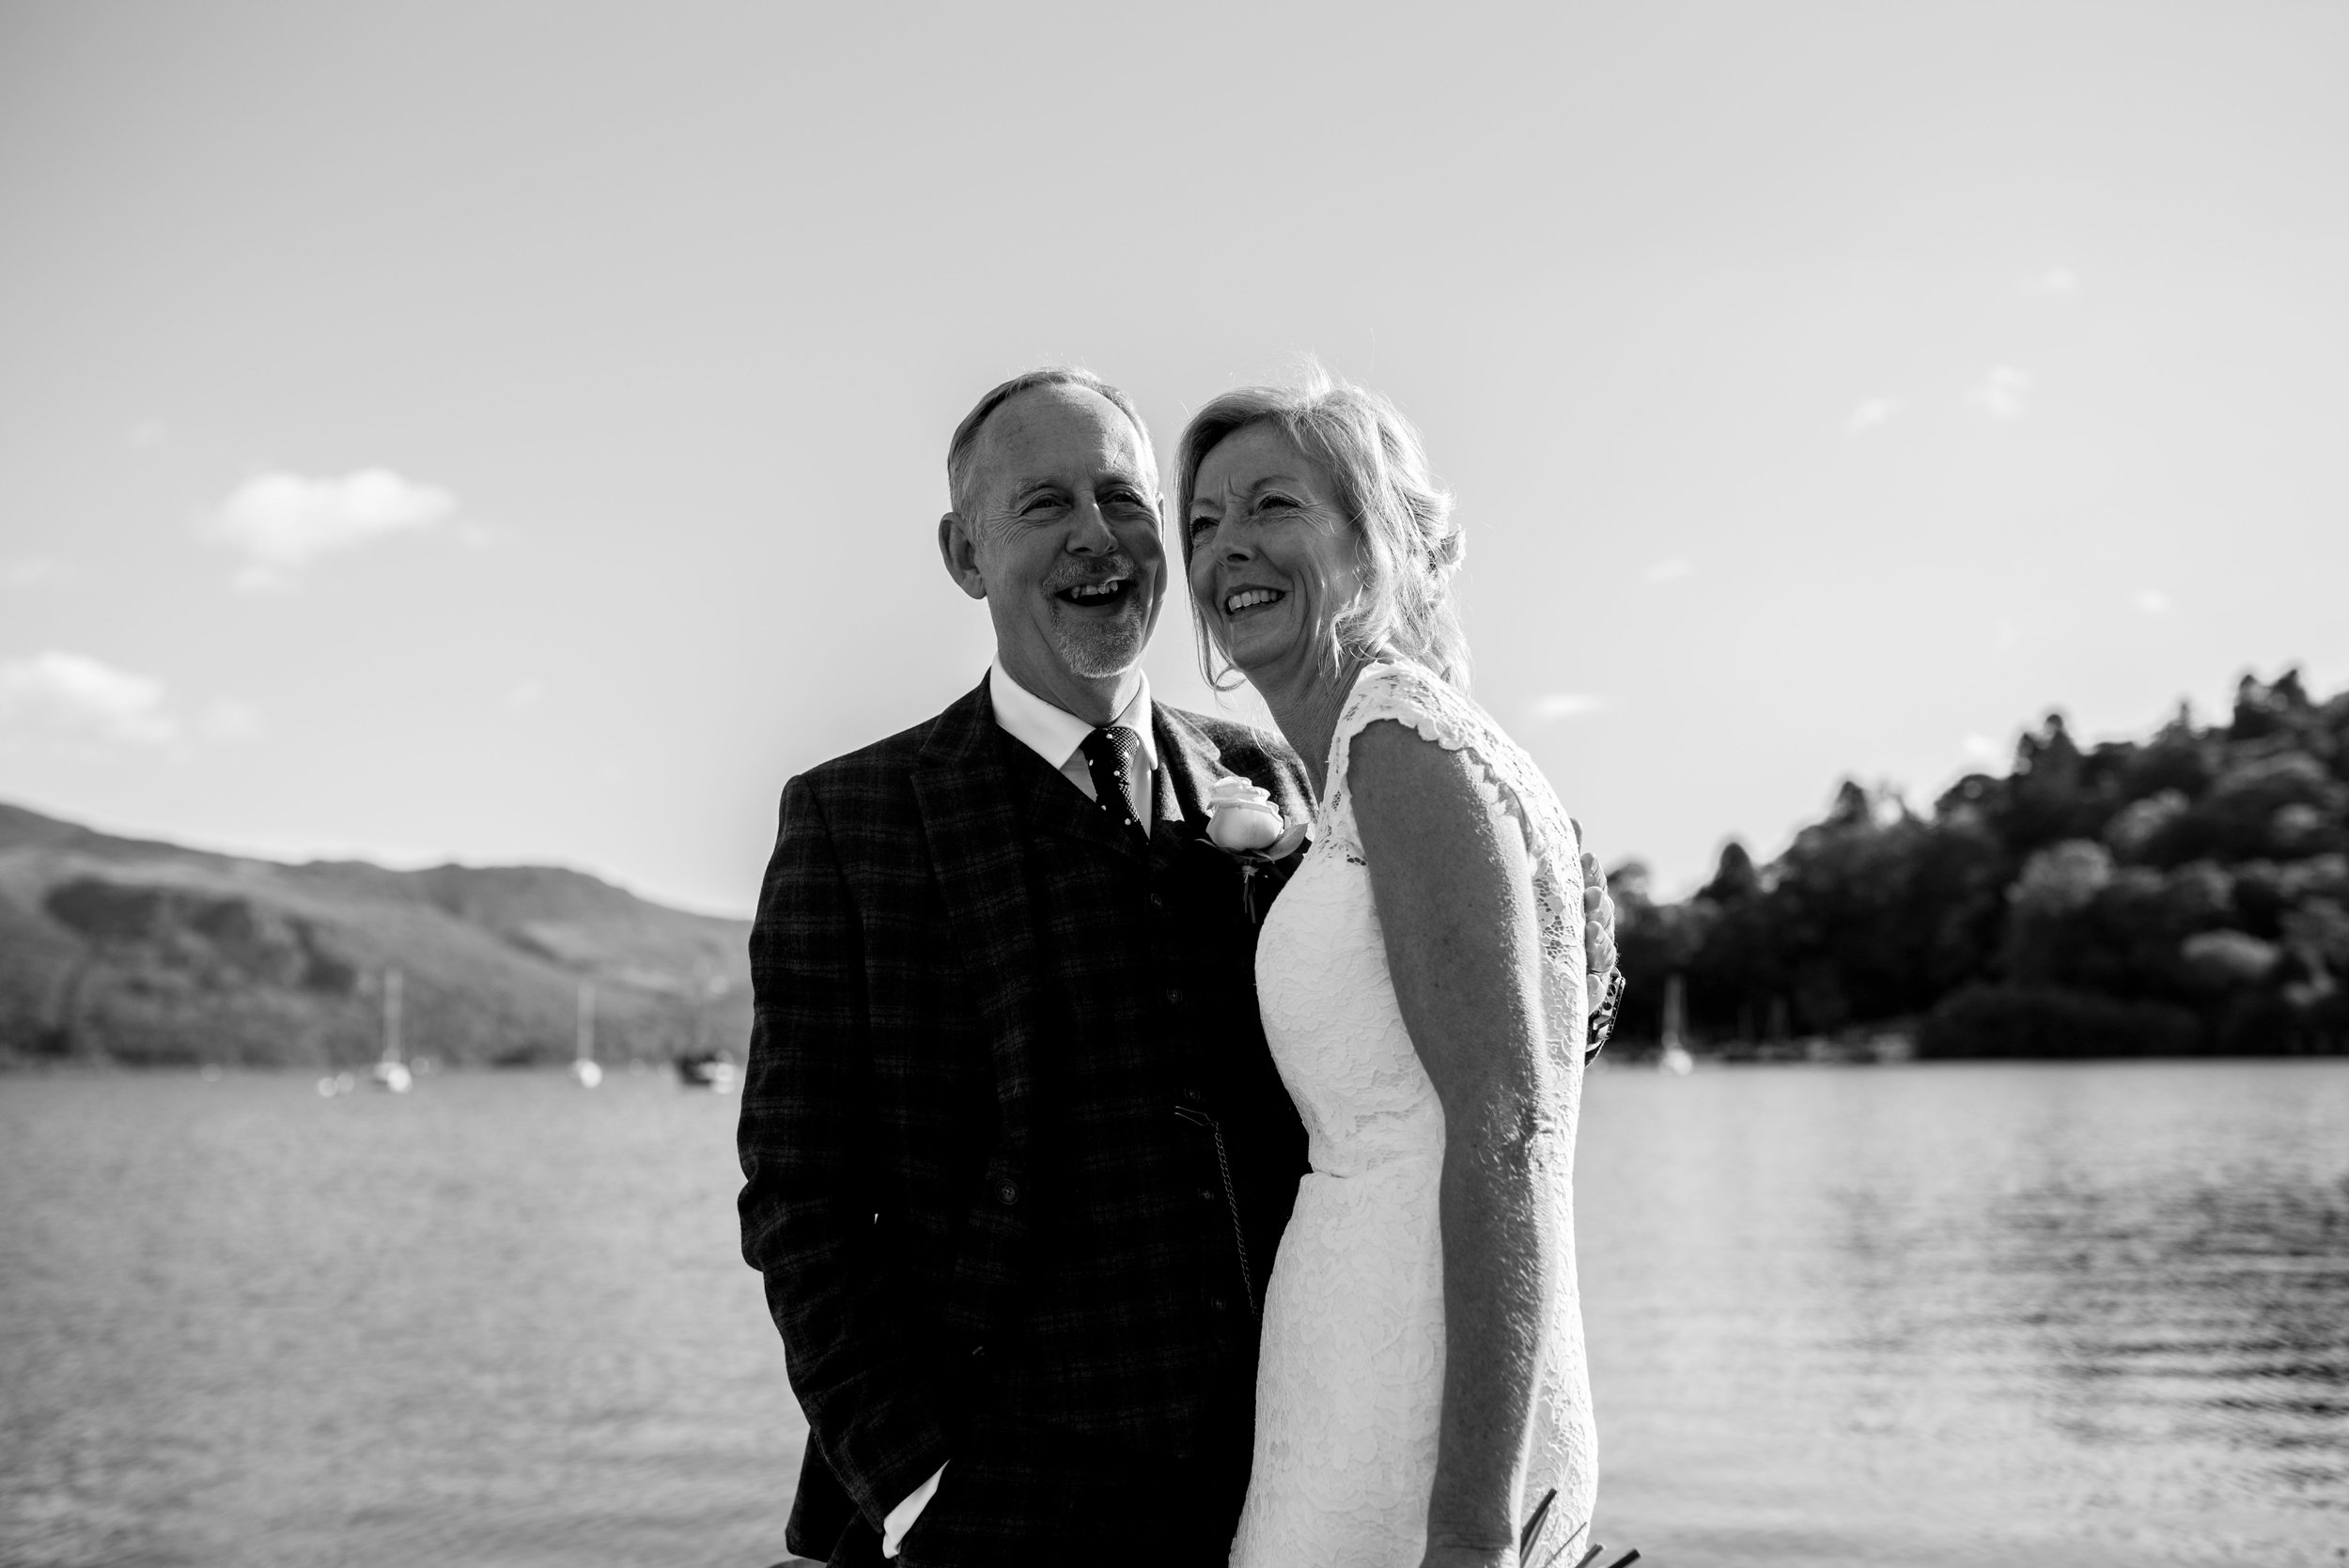 Cumbria wedding photography on the shore of the lake